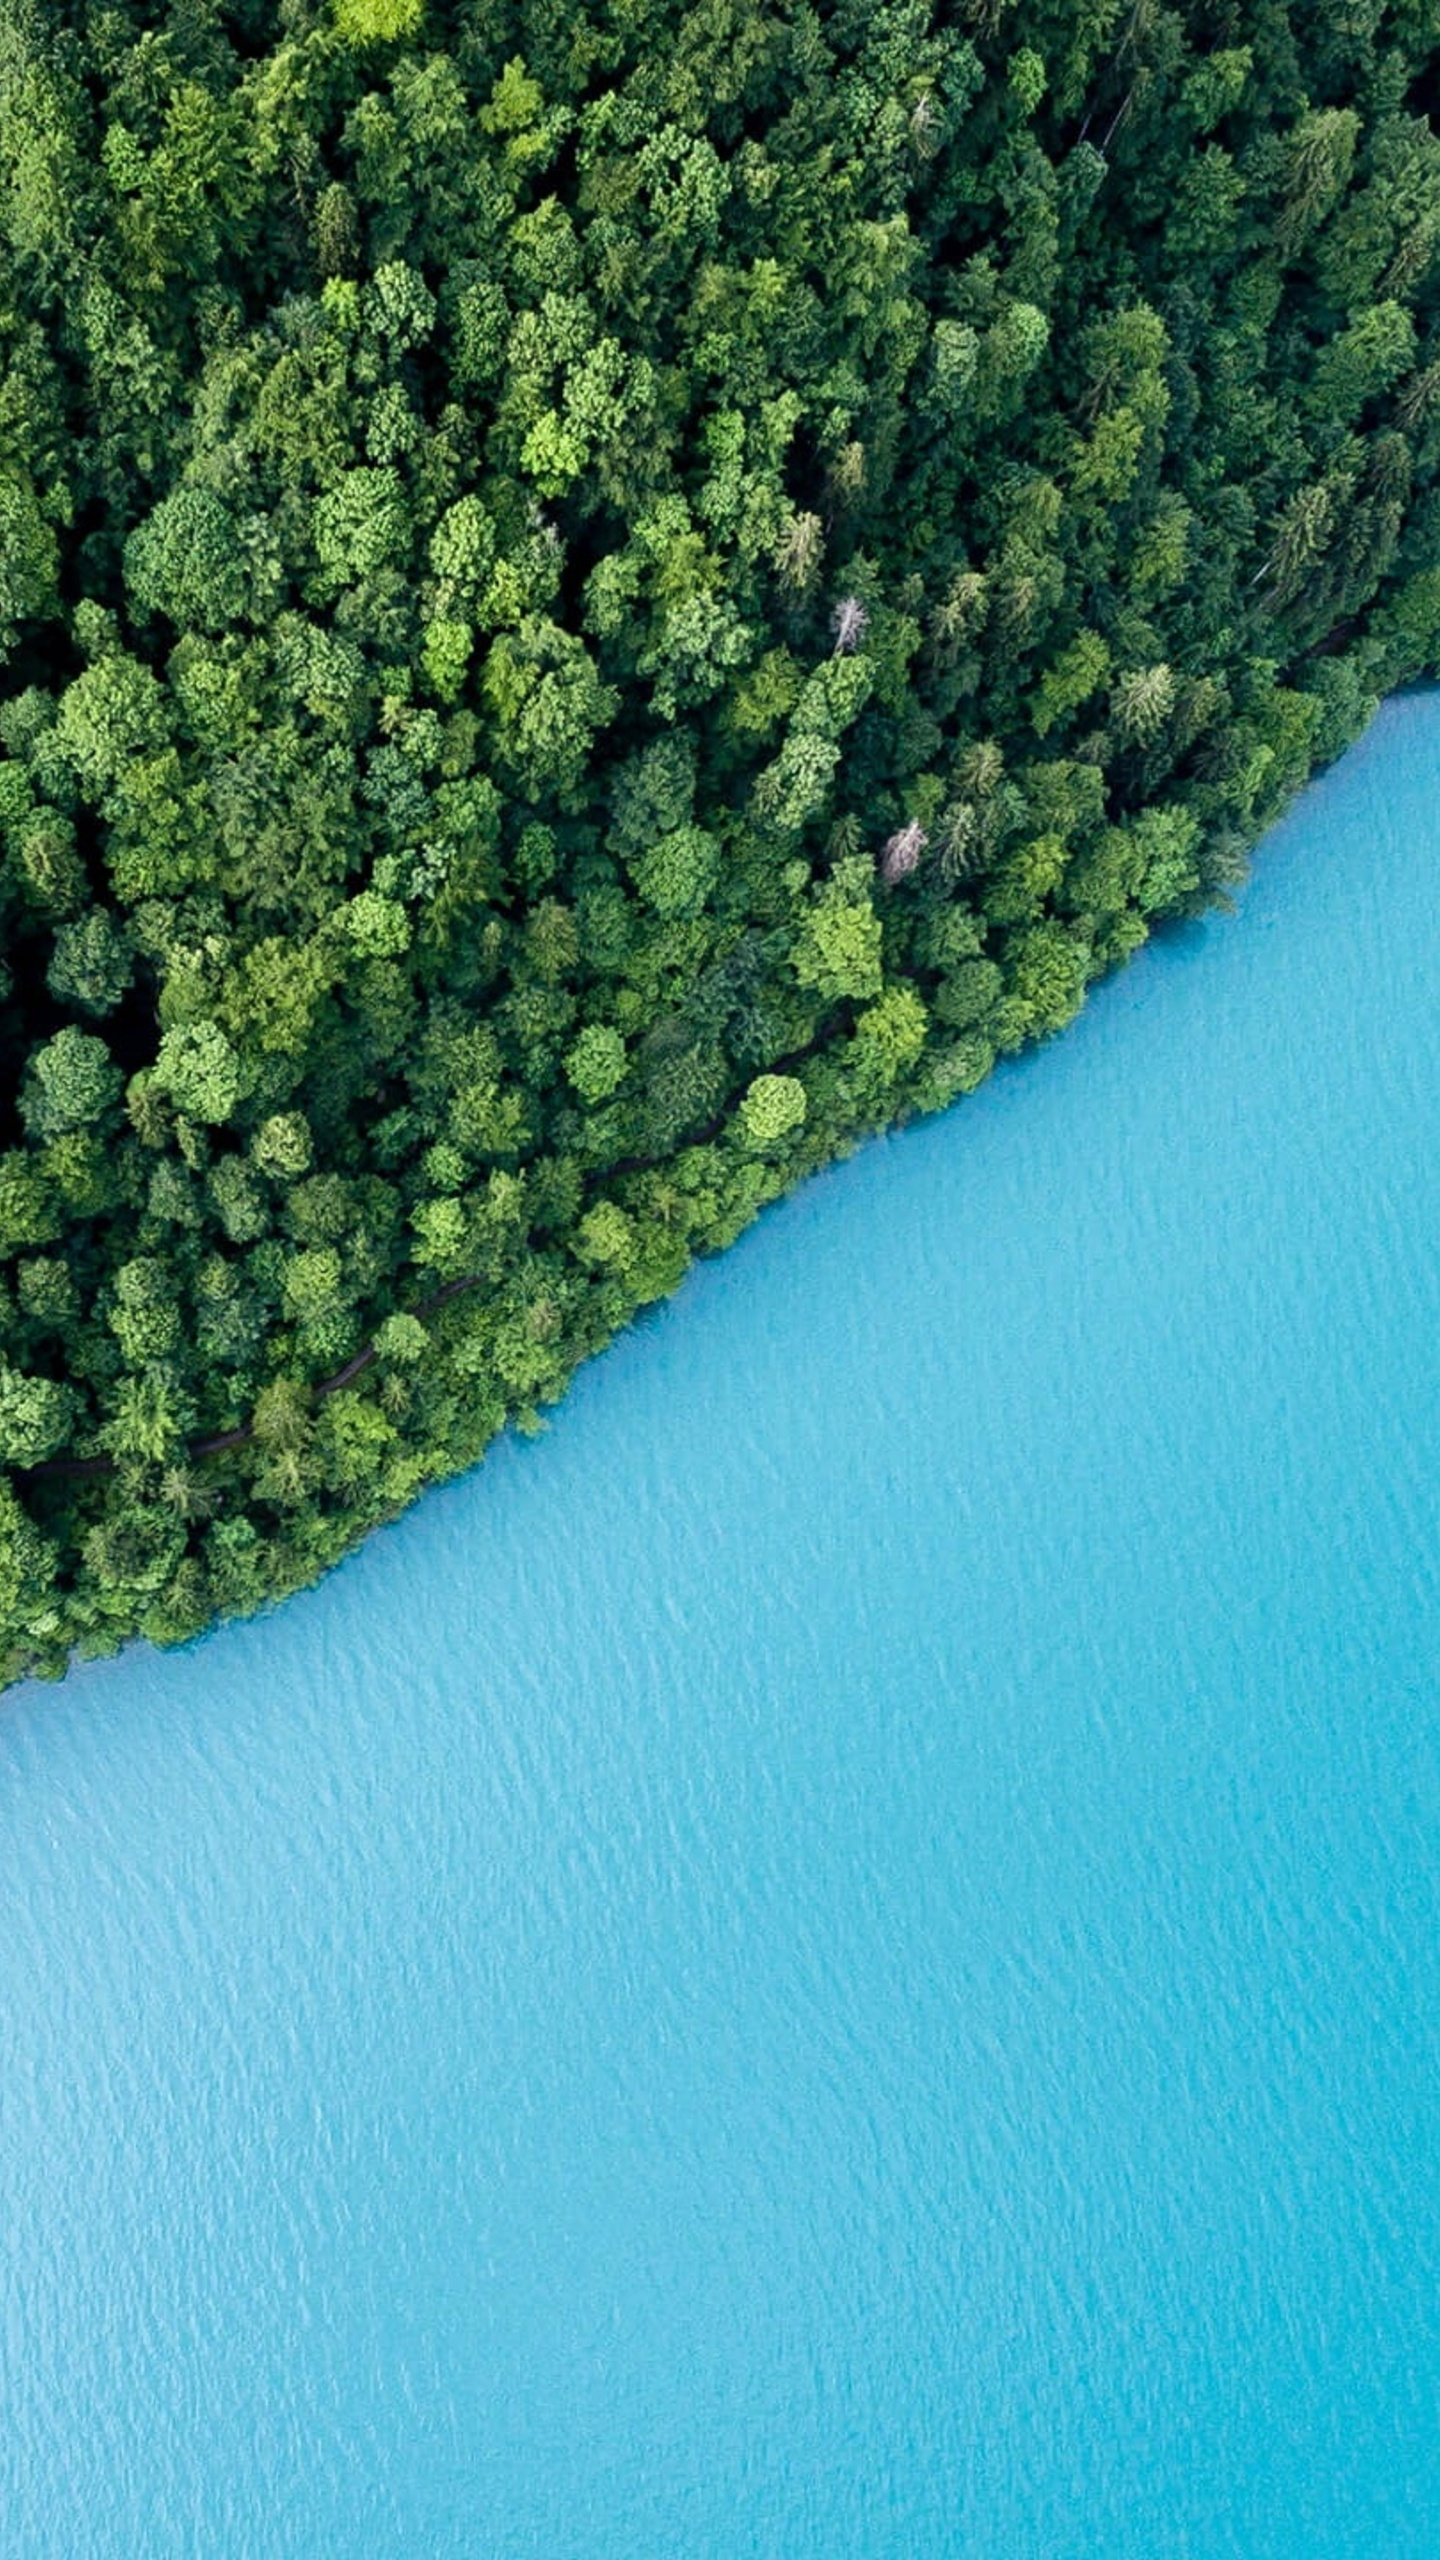 blue-lake-water-green-trees-plants-forests-xs.jpg